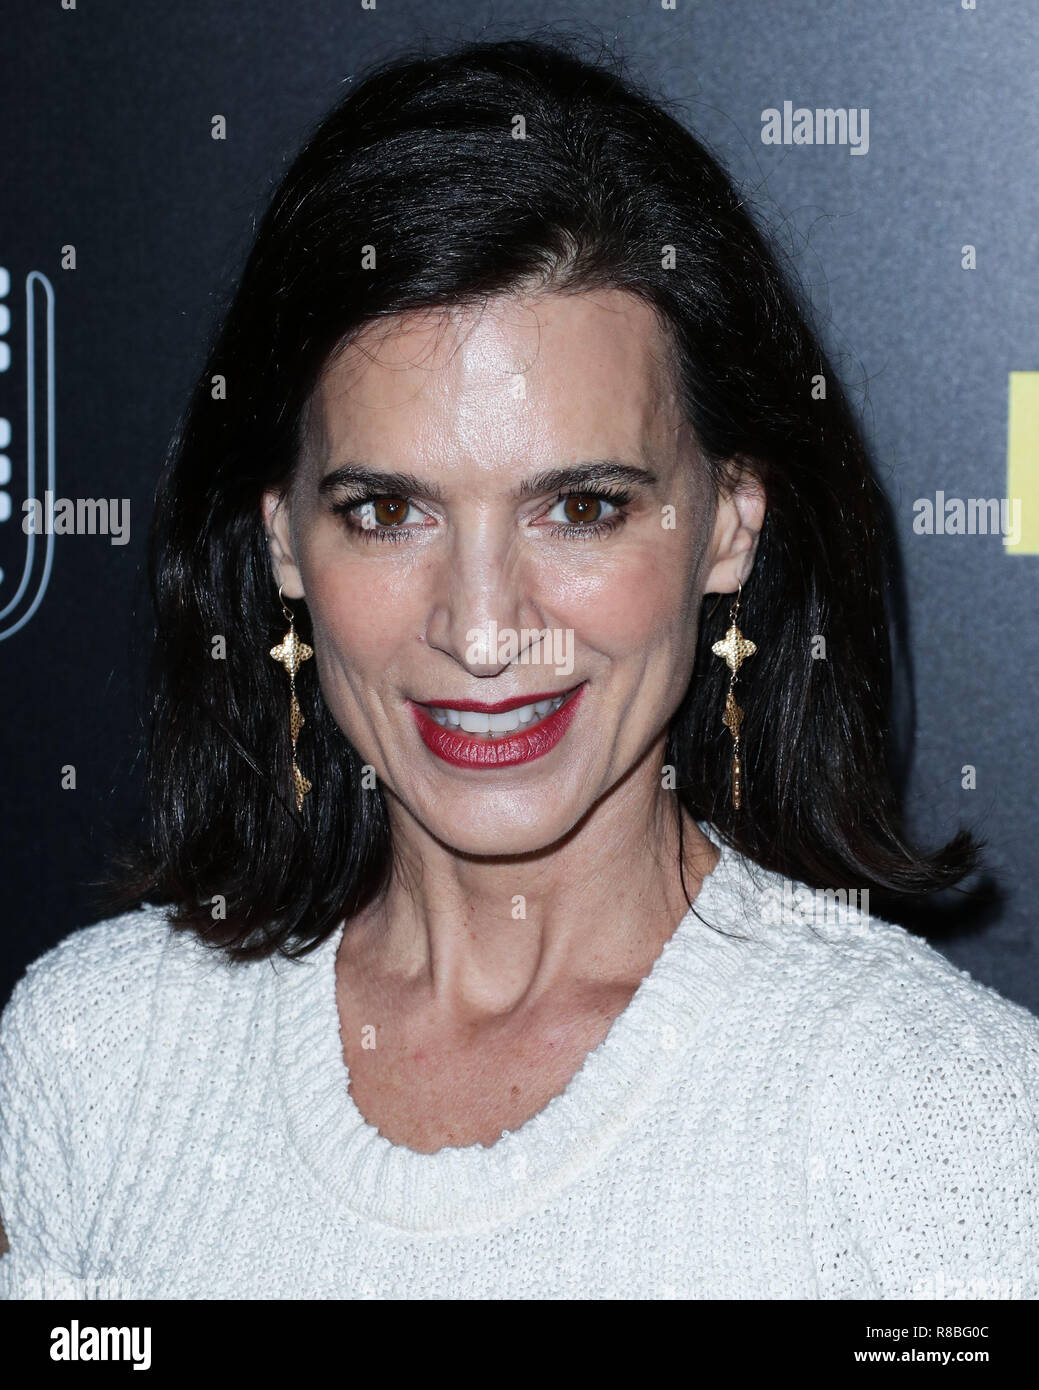 BEVERLY HILLS, LOS ANGELES, CA, USA - SEPTEMBER 19: Perrey Reeves at the Los Angeles Premiere Of Briarcliff Entertainment's 'Fahrenheit 11/9' held at the Samuel Goldwyn Theater at The Academy of Motion Picture Arts and Sciences on September 19, 2018 in Beverly Hills, Los Angeles, California, United States. (Photo by Xavier Collin/Image Press Agency) Stock Photo